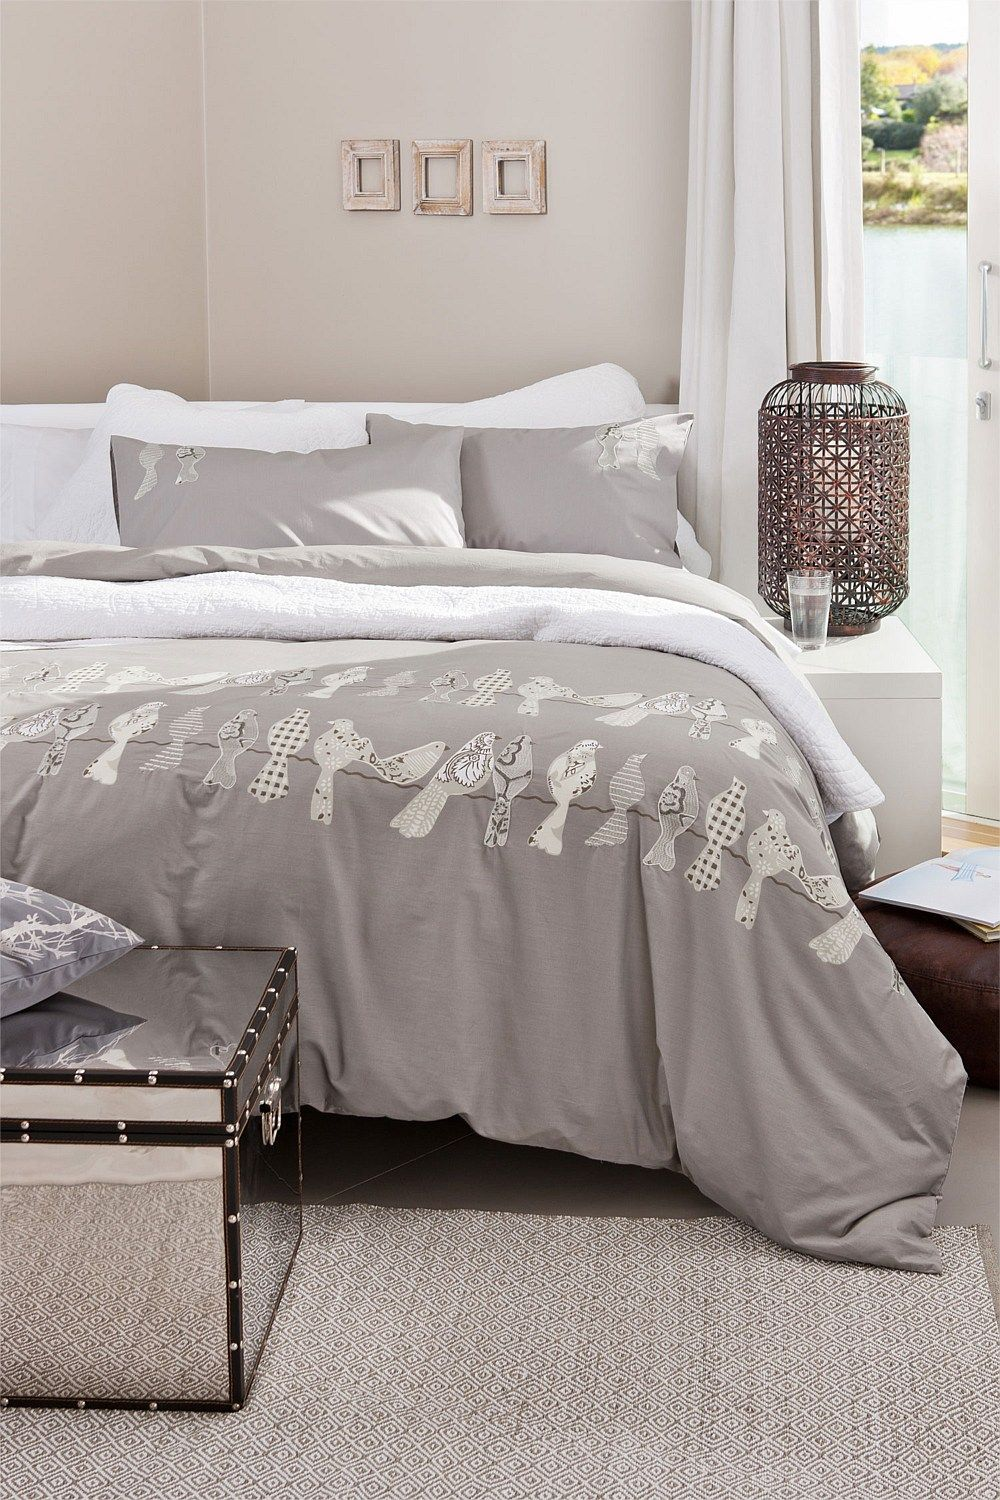 dot bedding grey design linen comforter style king kat sale pintuck set with ease echo sets